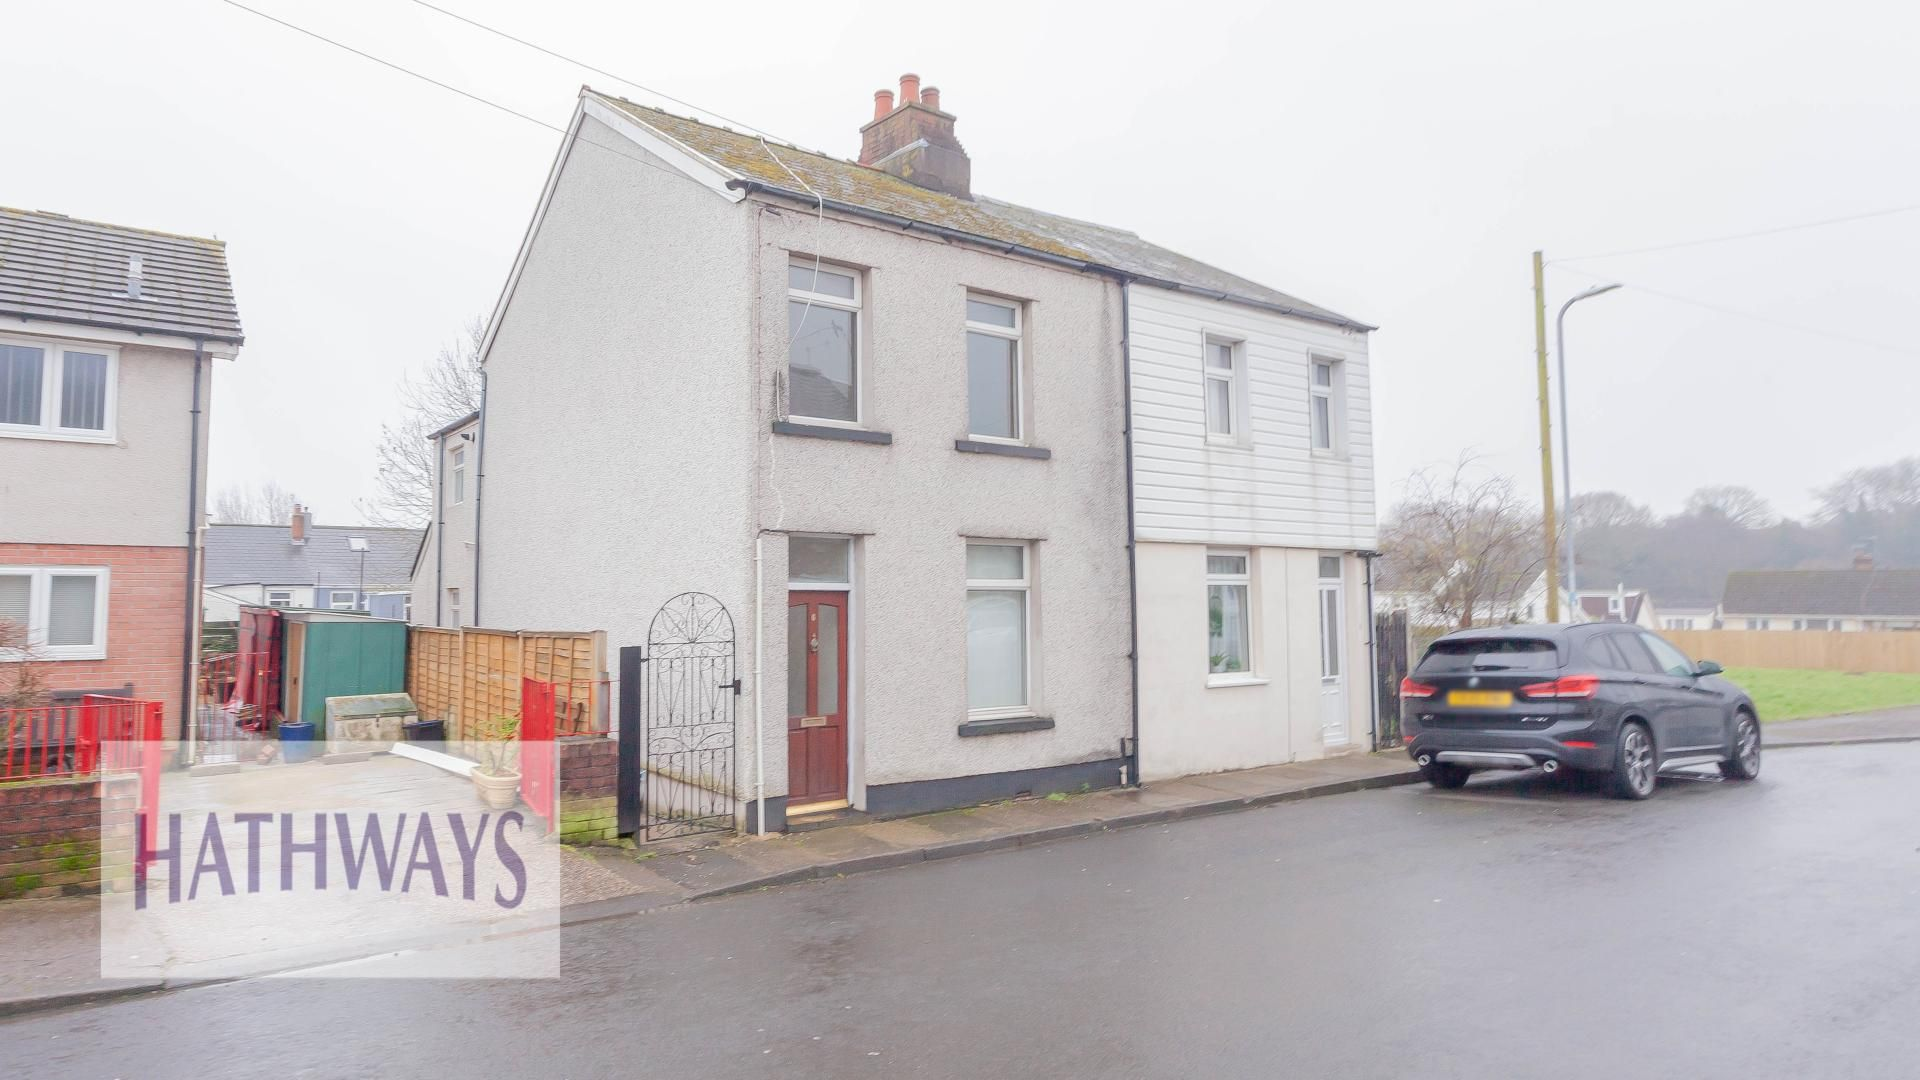 2 bed house for sale in Grosvenor Place, NP4